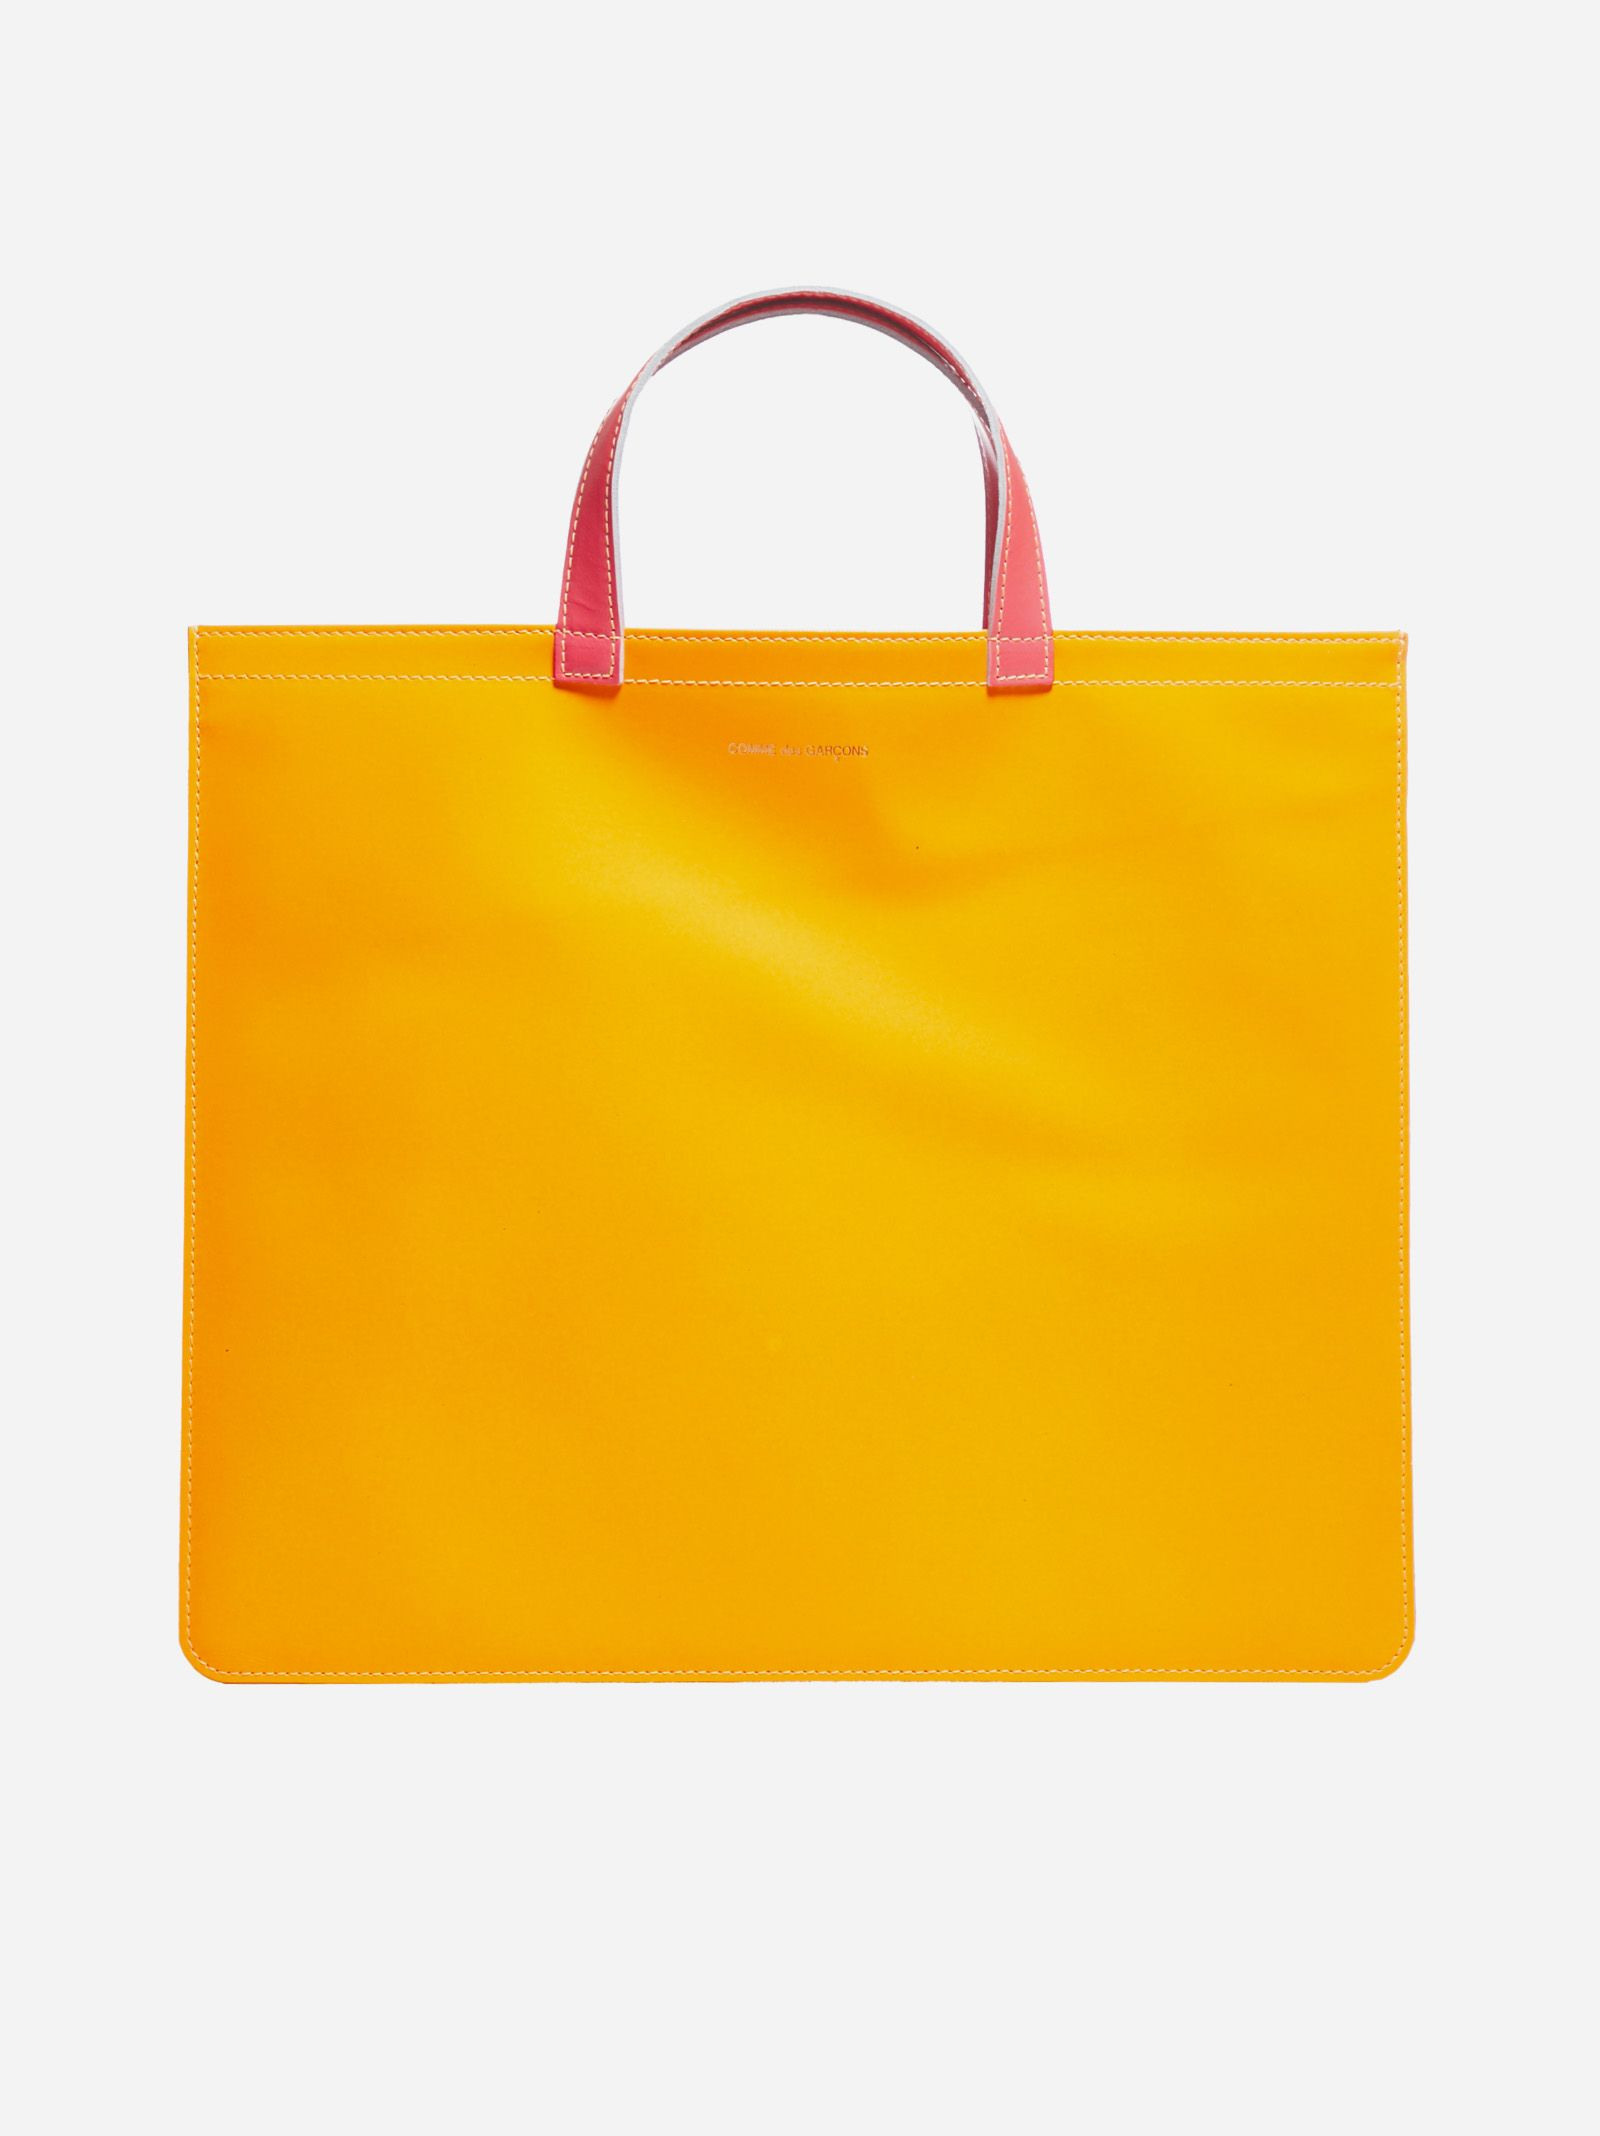 Bicolor leather tote bag